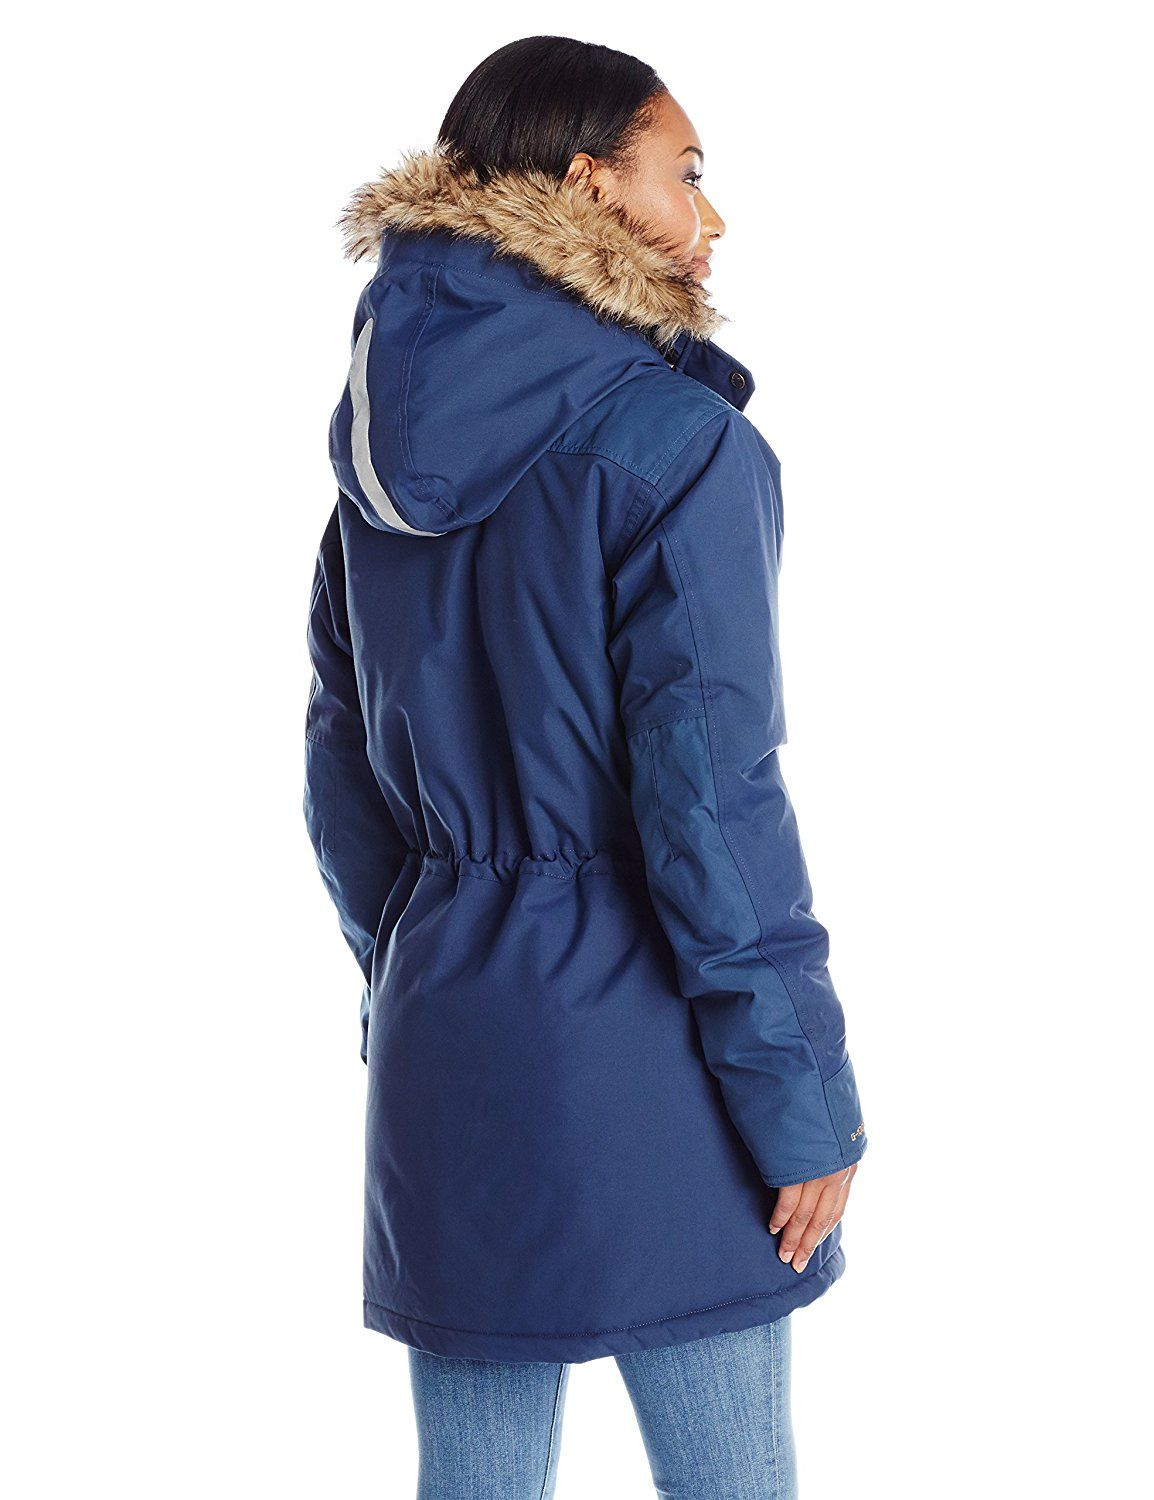 dcf827496 Best winter jackets for Iceland and other Nordic countries from ...